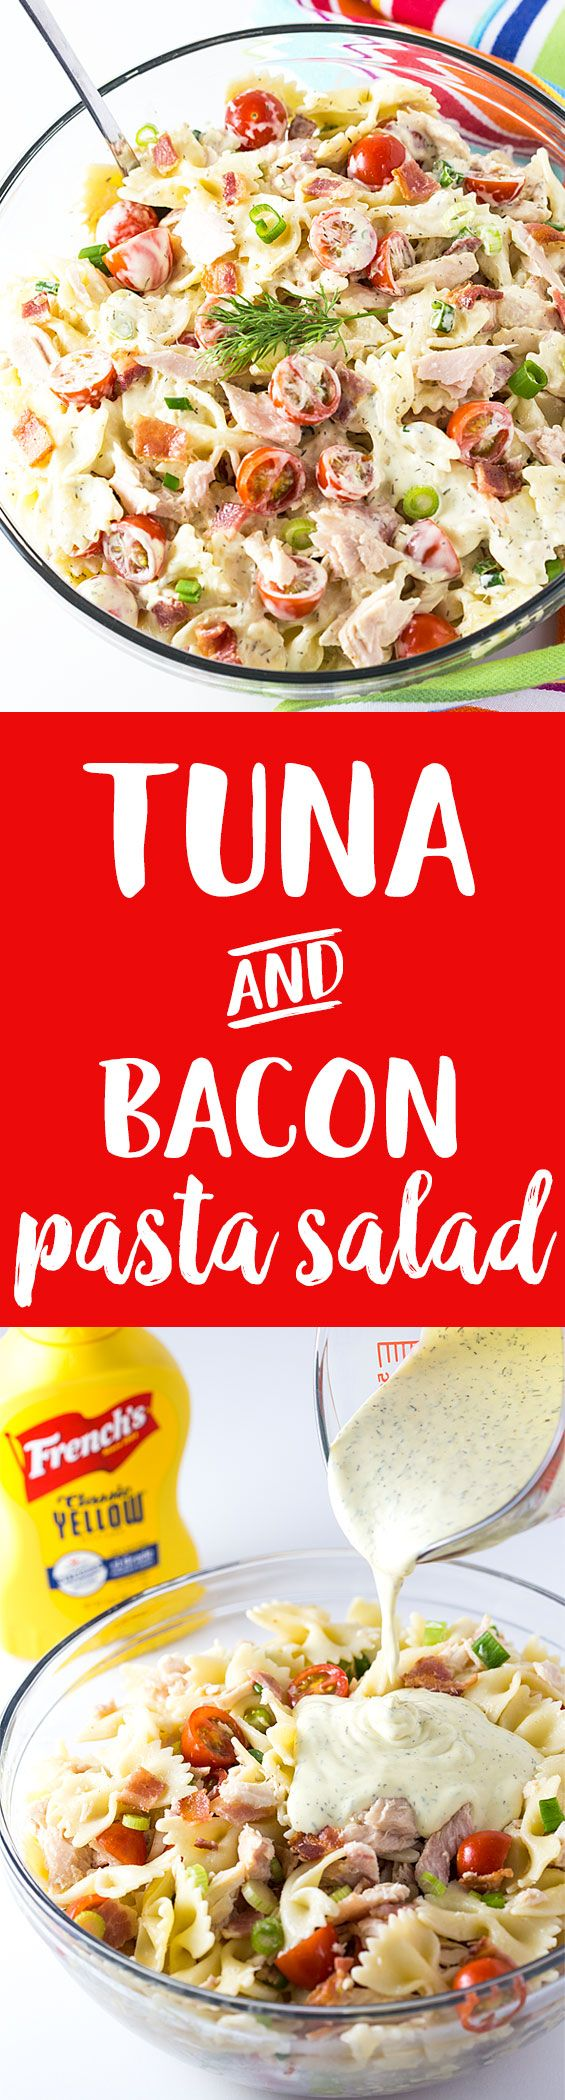 This hearty Tuna and Bacon Pasta Salad with a tangy dressing is packed with flavor! #ad #FrenchsCrowd #FrenchsMustard